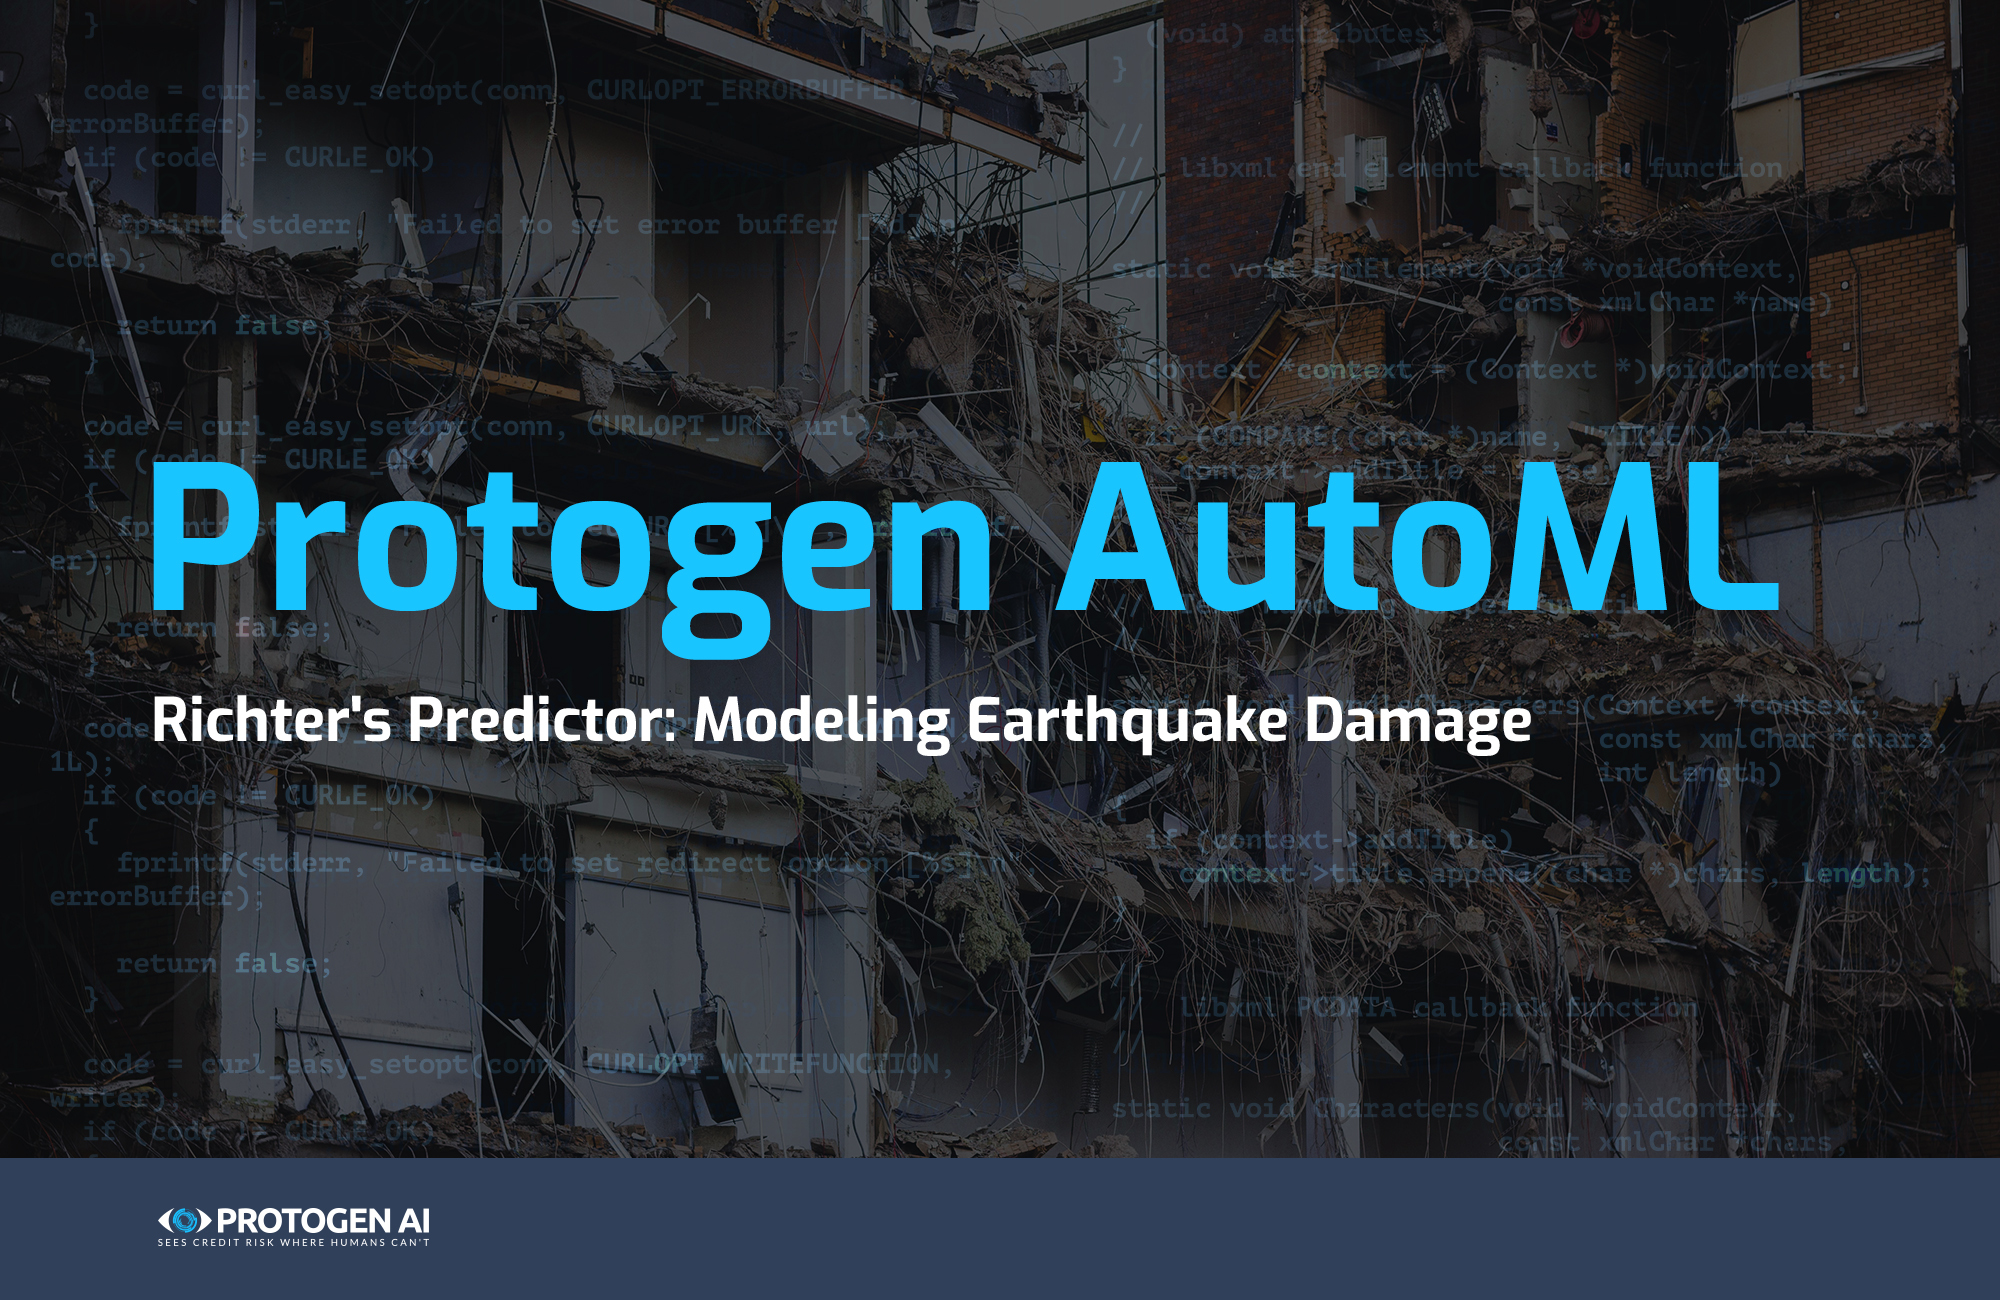 Predicting the Level of Damage Caused by the Earthquake. Protogen Team Has Joined a Competition